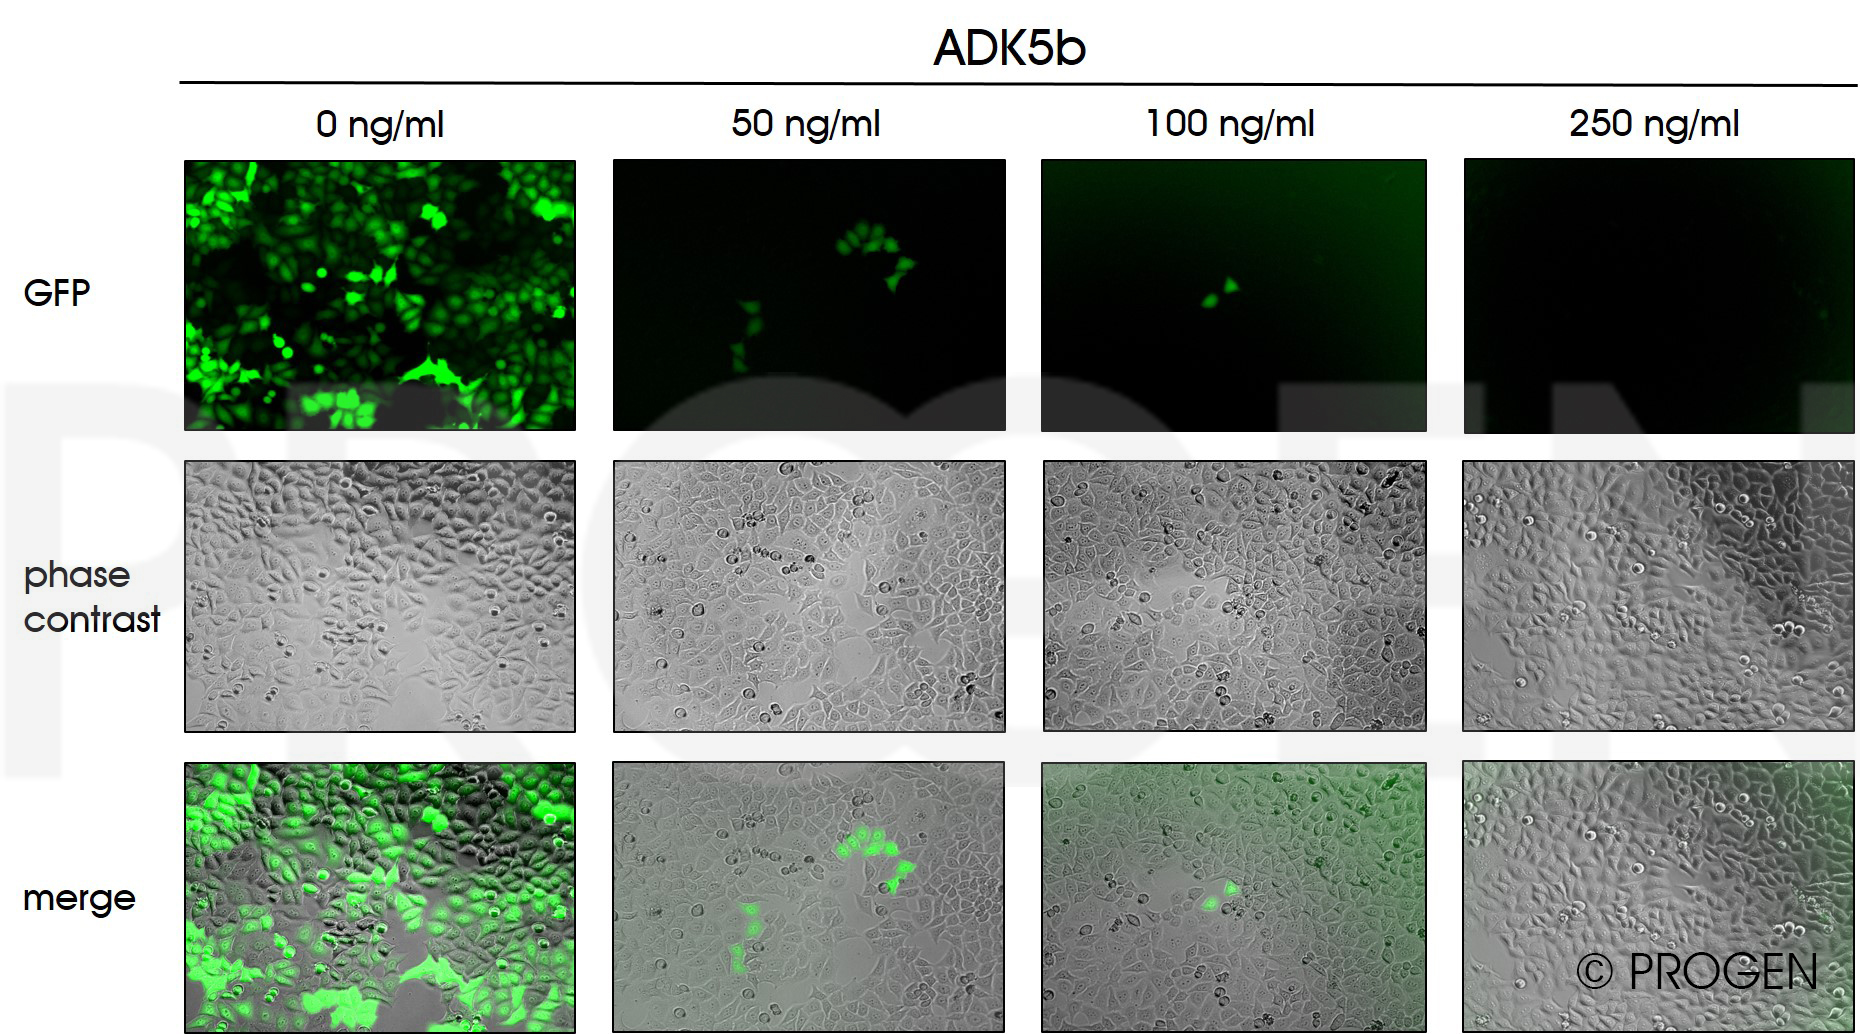 anti-AAV5 (intact particle) mouse monoclonal, ADK5b, lyophilized, purified